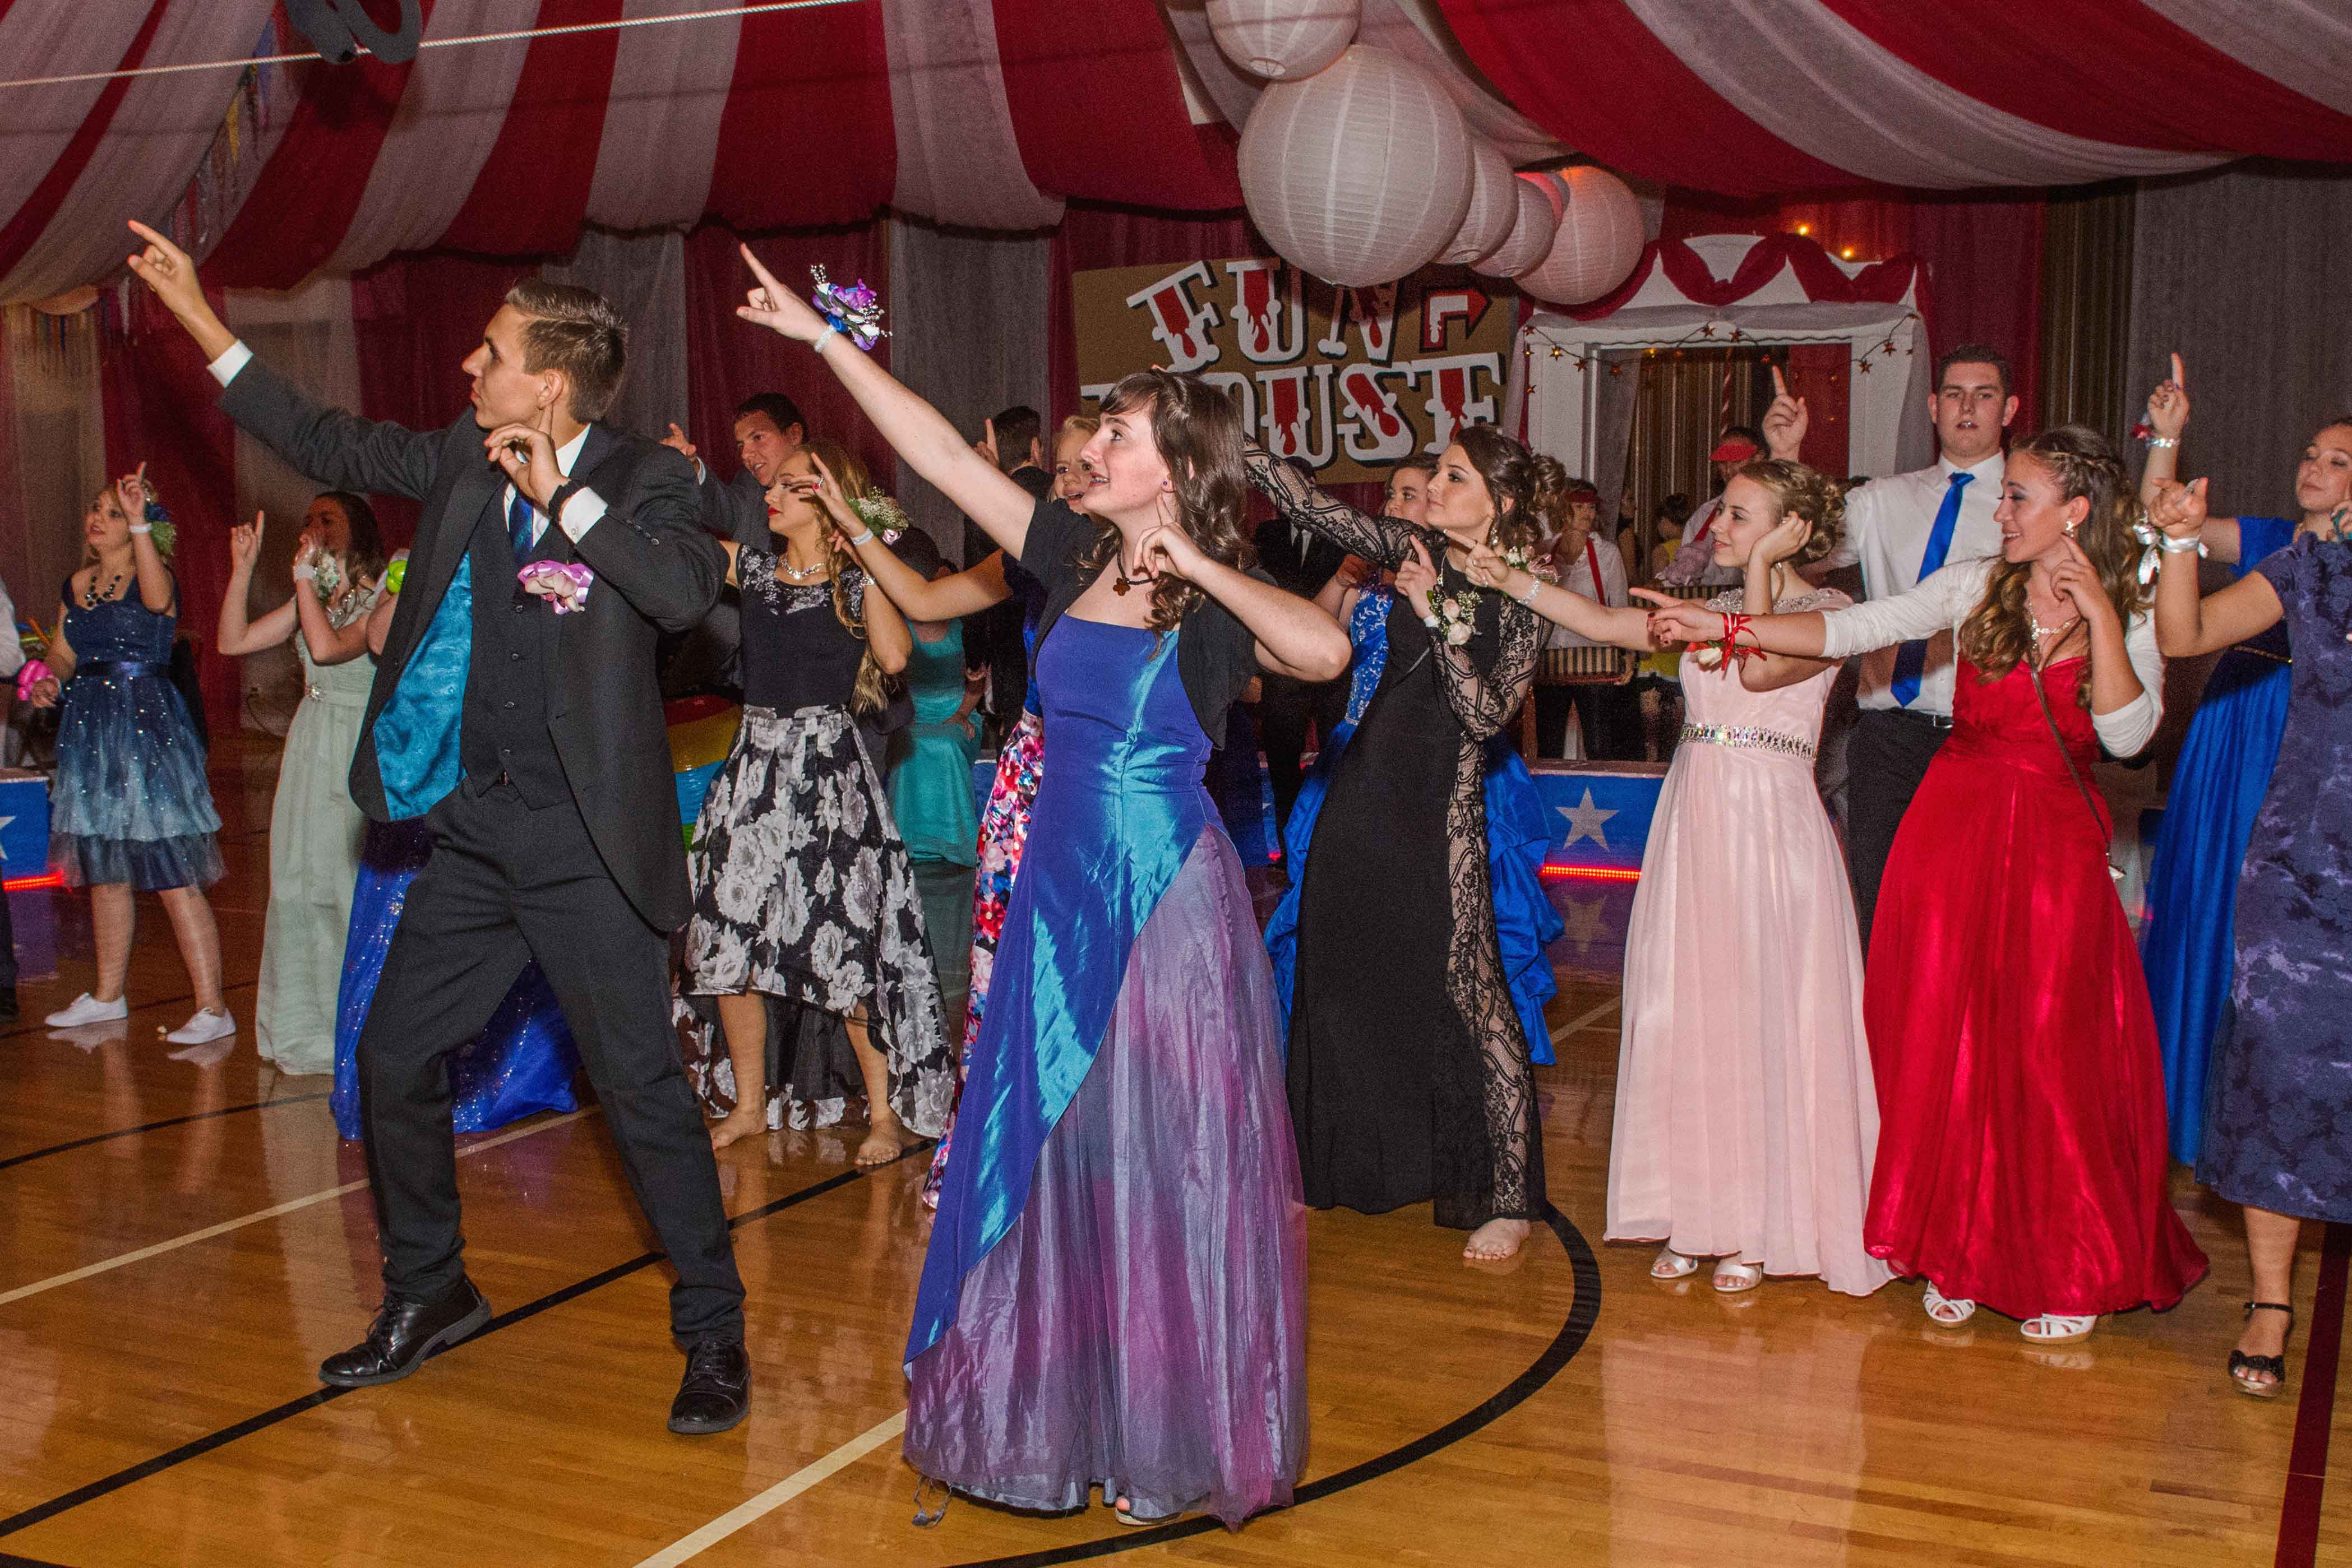 Mormon Prom Promotes Gospel Standards And Provides Good, Clean Fun For Everyone